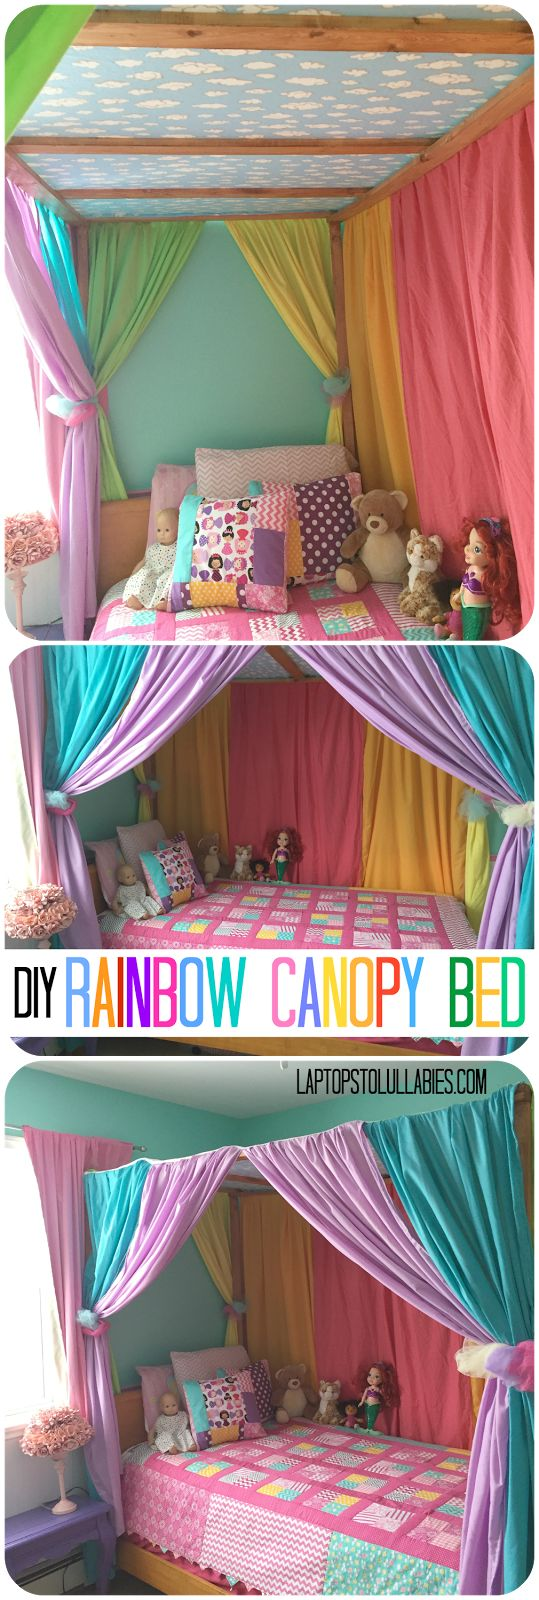 25 best ideas about rainbow bedroom on pinterest rainbow room rainbow girls bedroom and - Images of kiddies decorated room ...